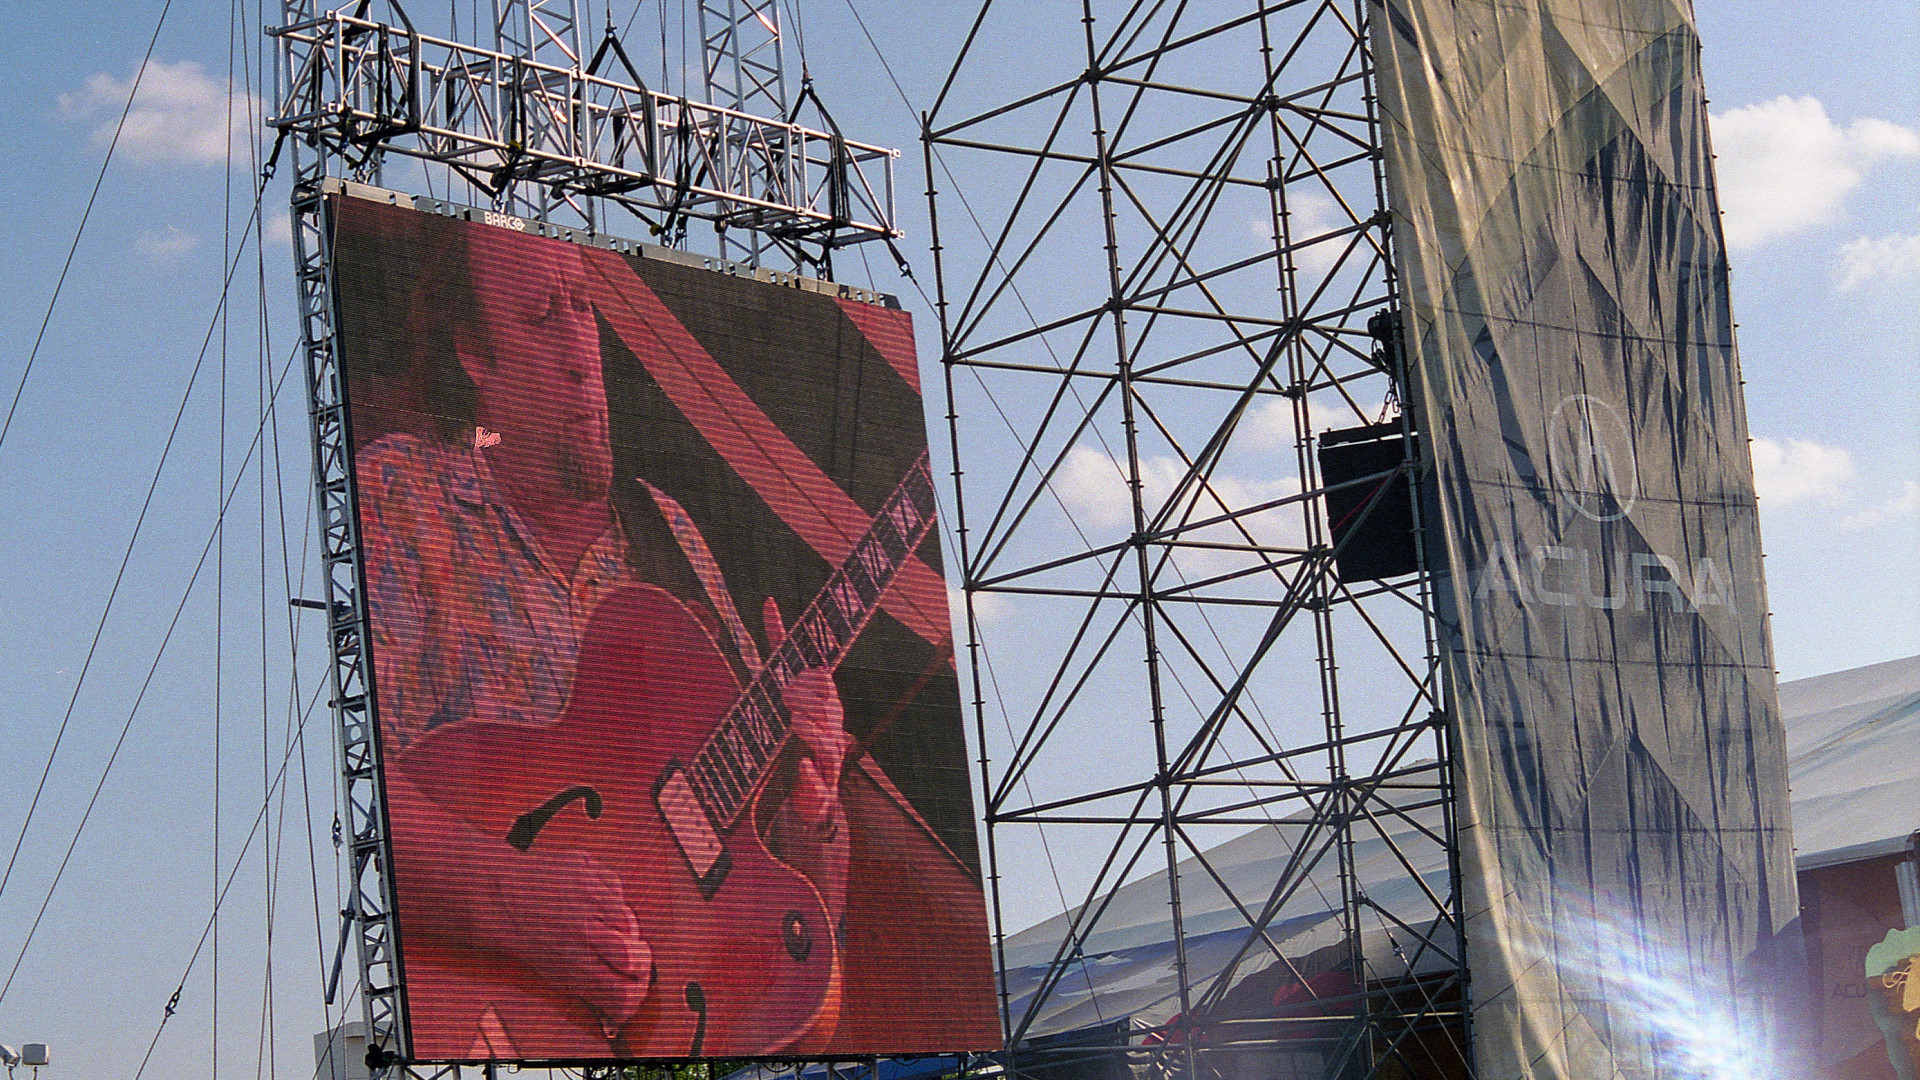 Crosby, Stills, & Nash at Jazz Fest 2003